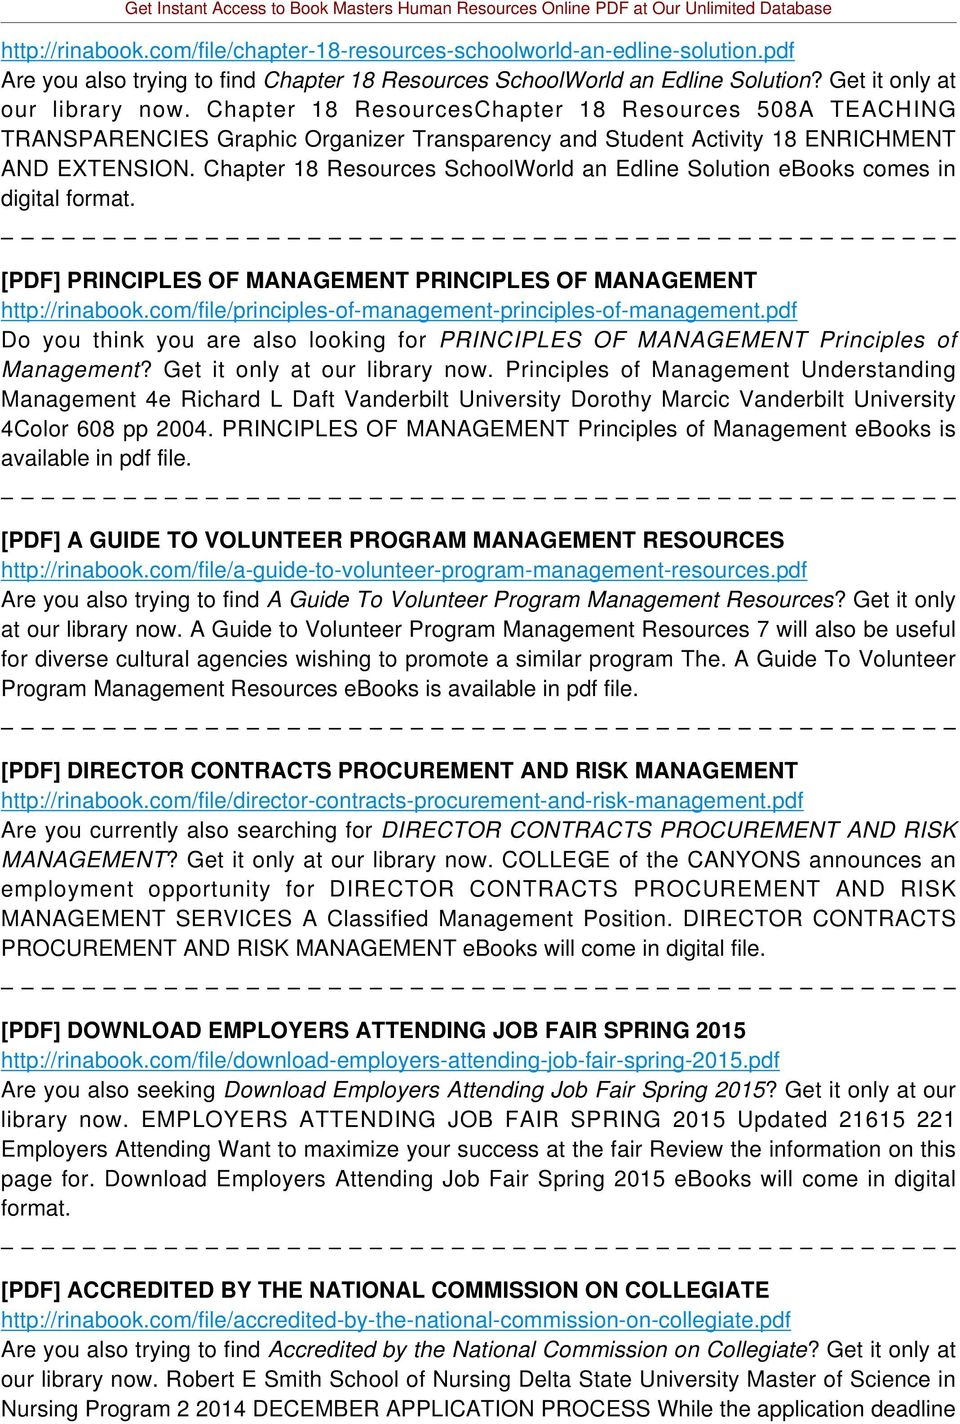 Chapter 18 Resources SchoolWorld an Edline Solution ebooks comes in digital format. [PDF] PRINCIPLES OF MANAGEMENT PRINCIPLES OF MANAGEMENT http://rinabook.